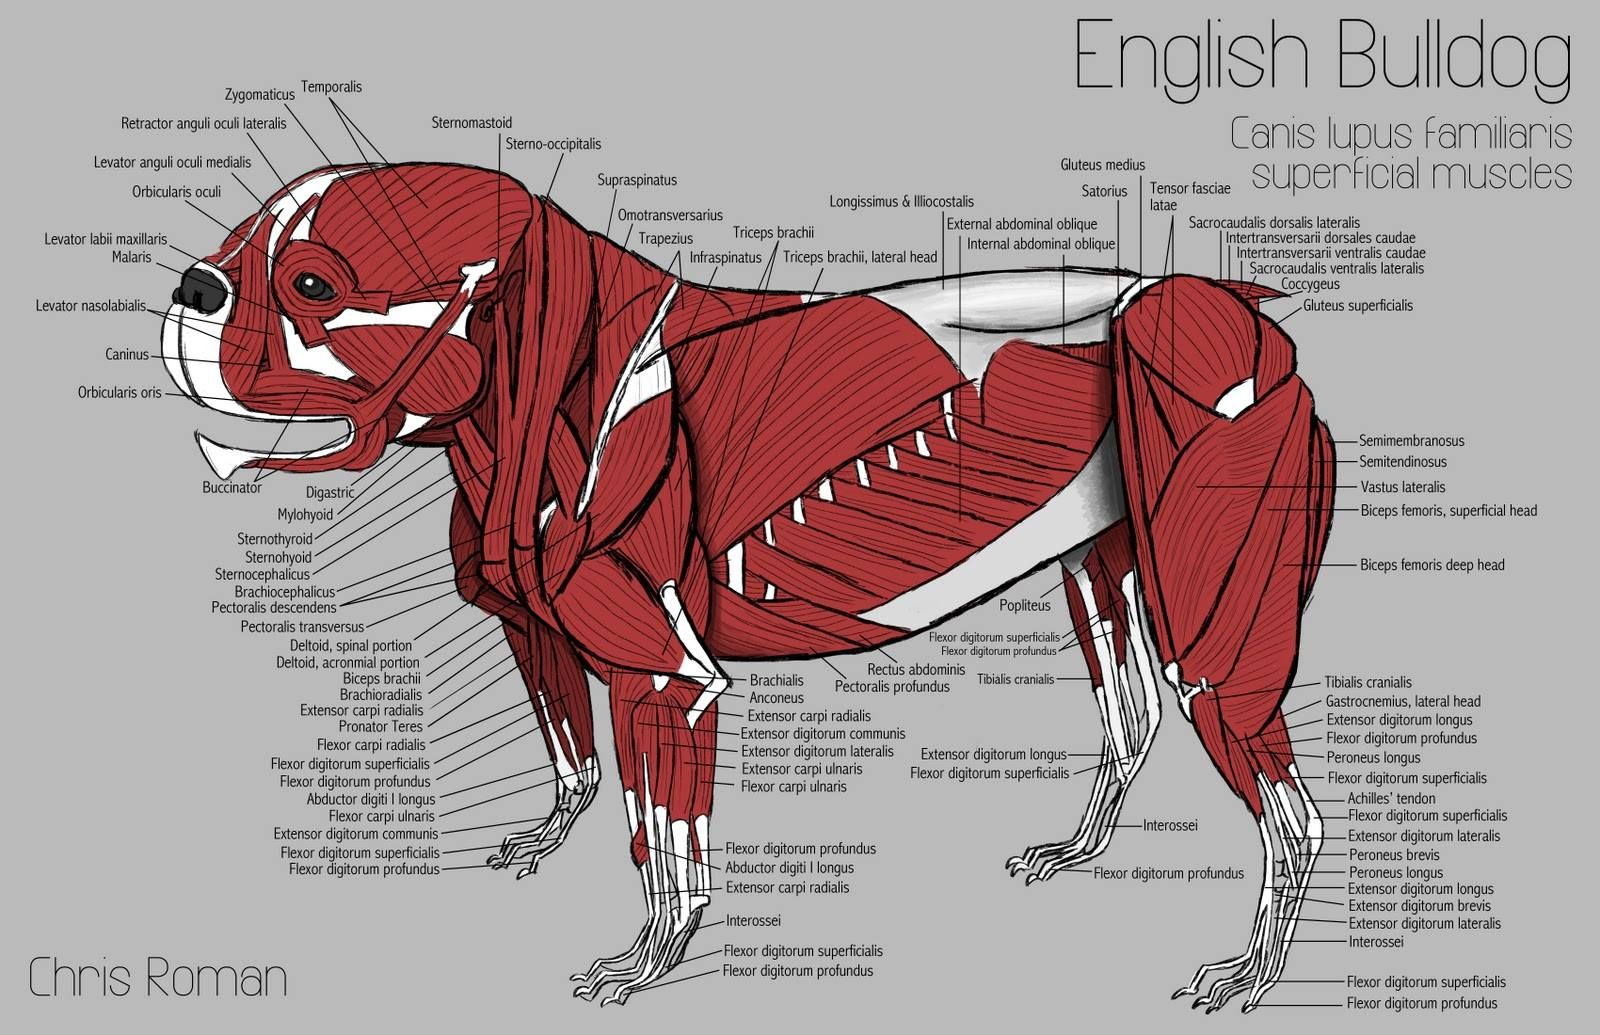 hight resolution of the superficial muscles of the english bulldog